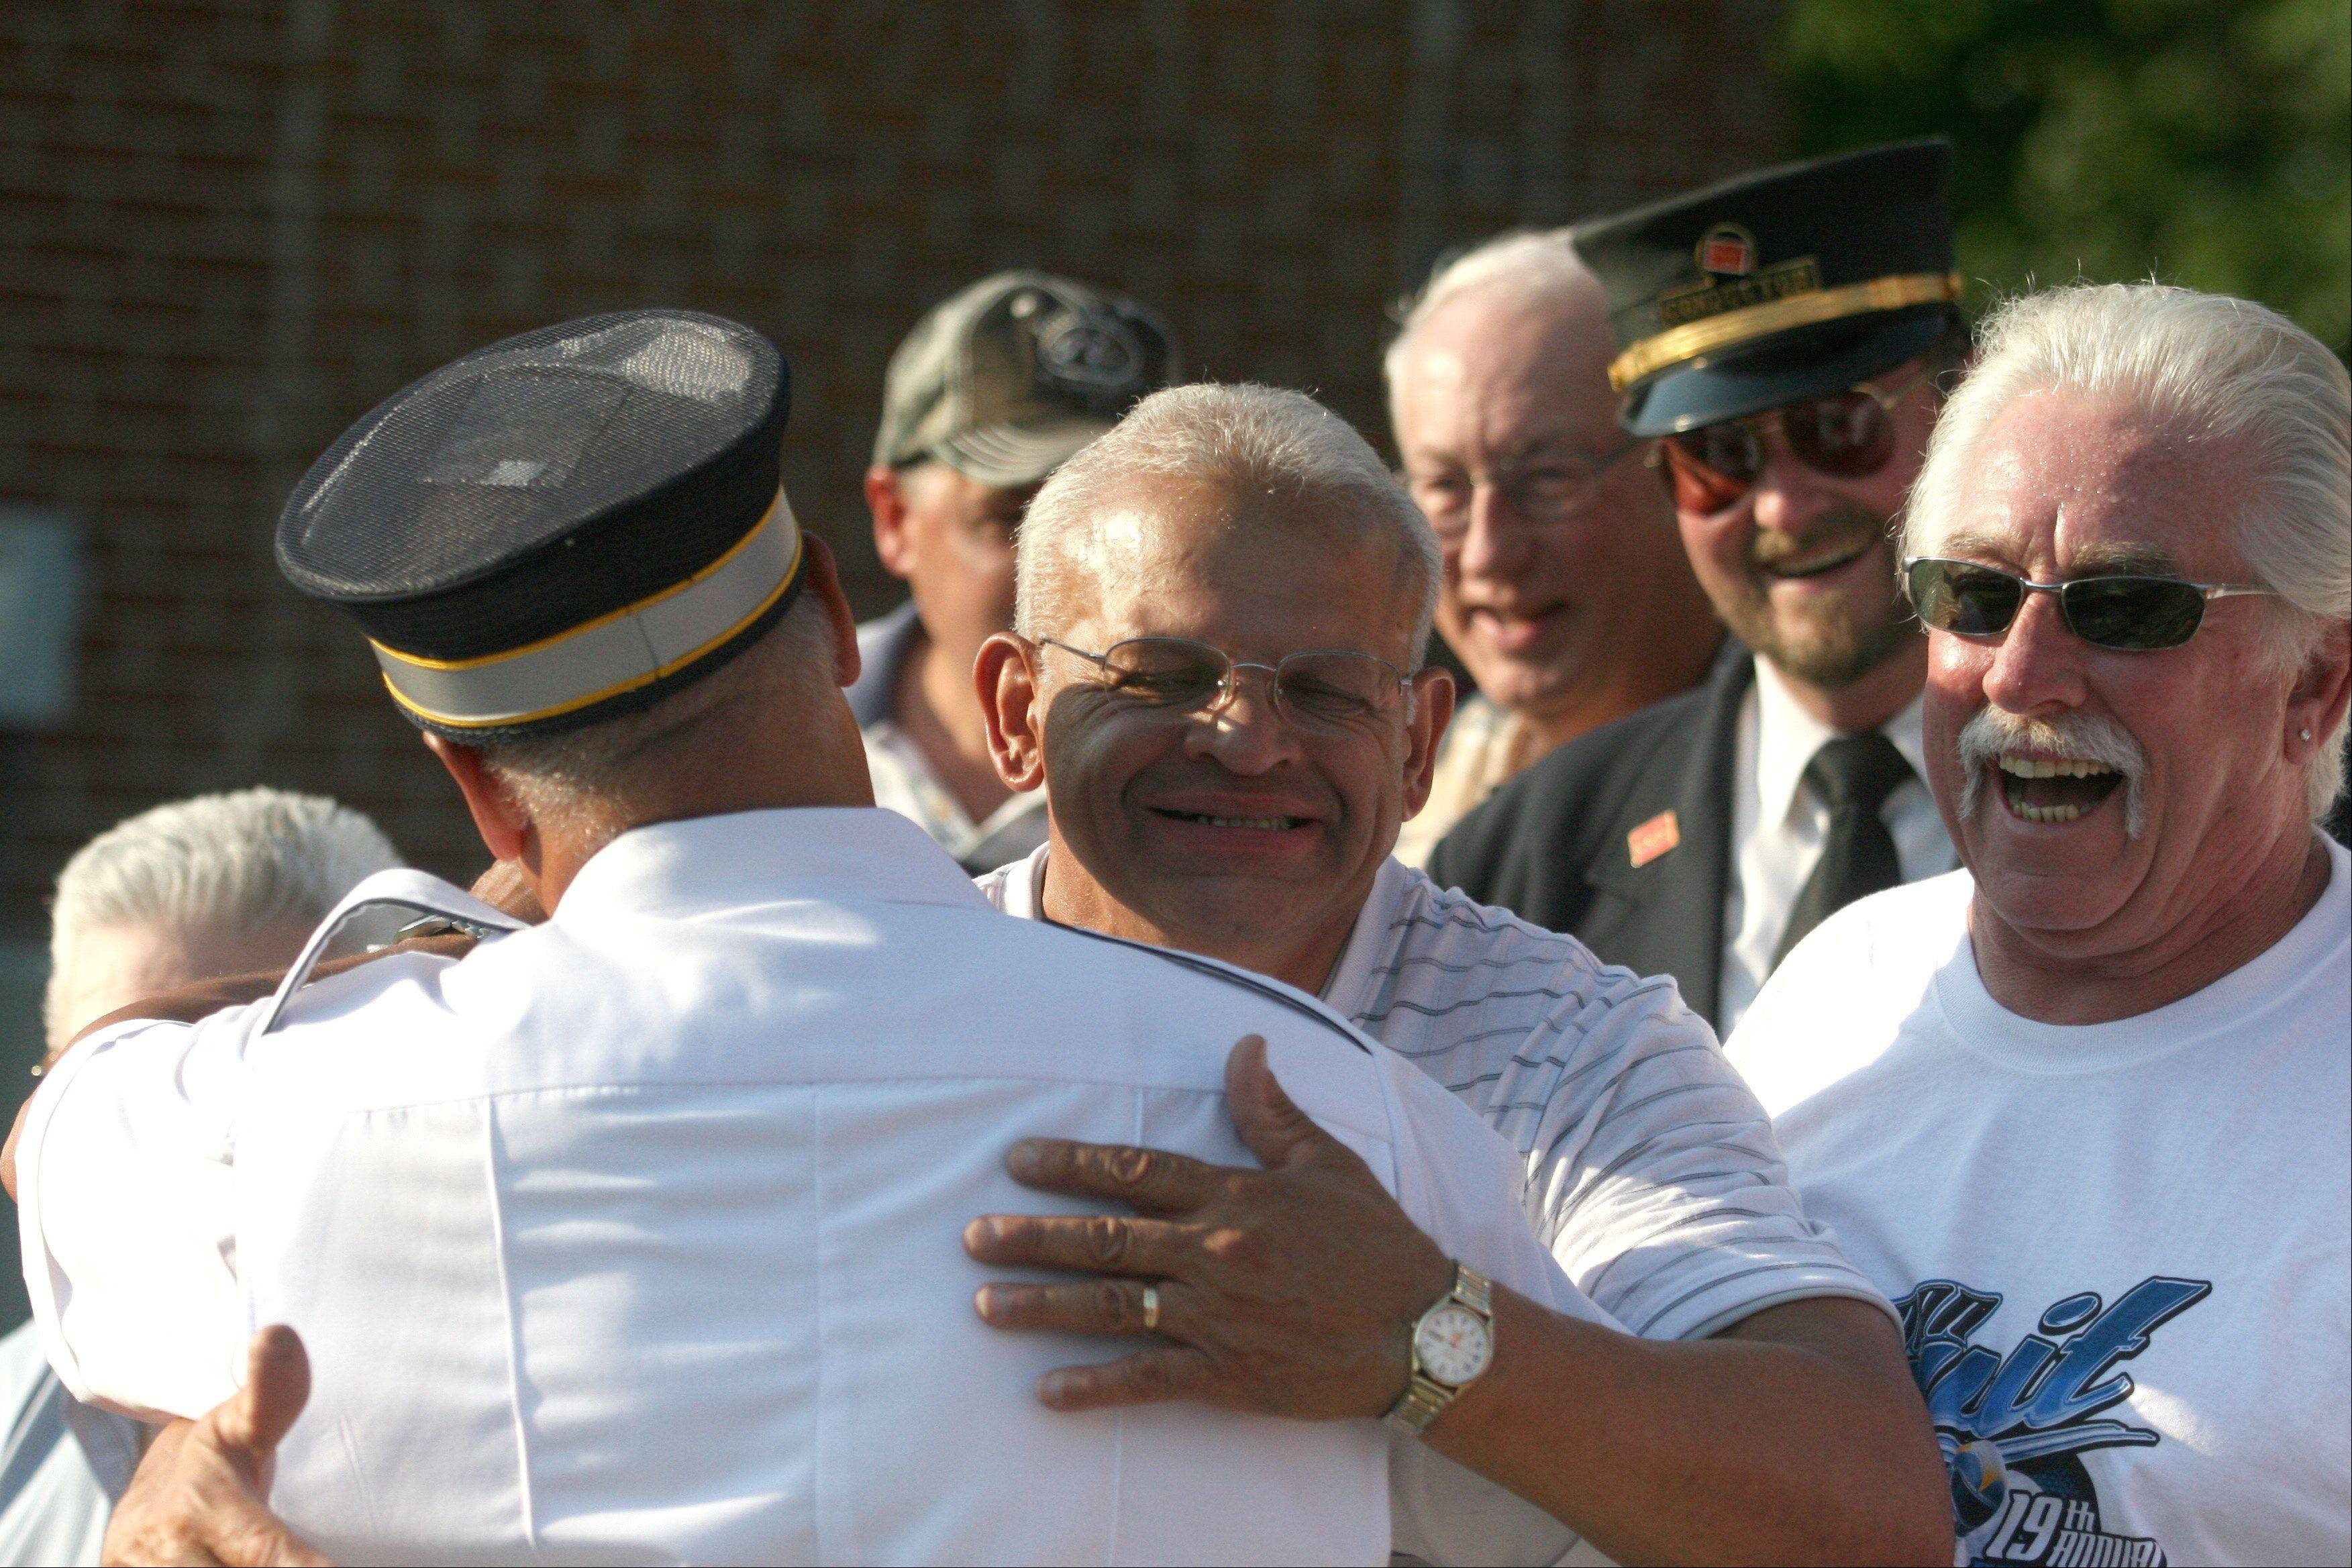 Metra engineer Hector Feliciano of Genoa embraces his brother Ralph of Elgin after piloting a train for the final time upon arrival at the Chicago Street Station in Elgin on Tuesday evening. Hector Feliciano retired after 42 years of service. Ralph is a conductor with Metra.